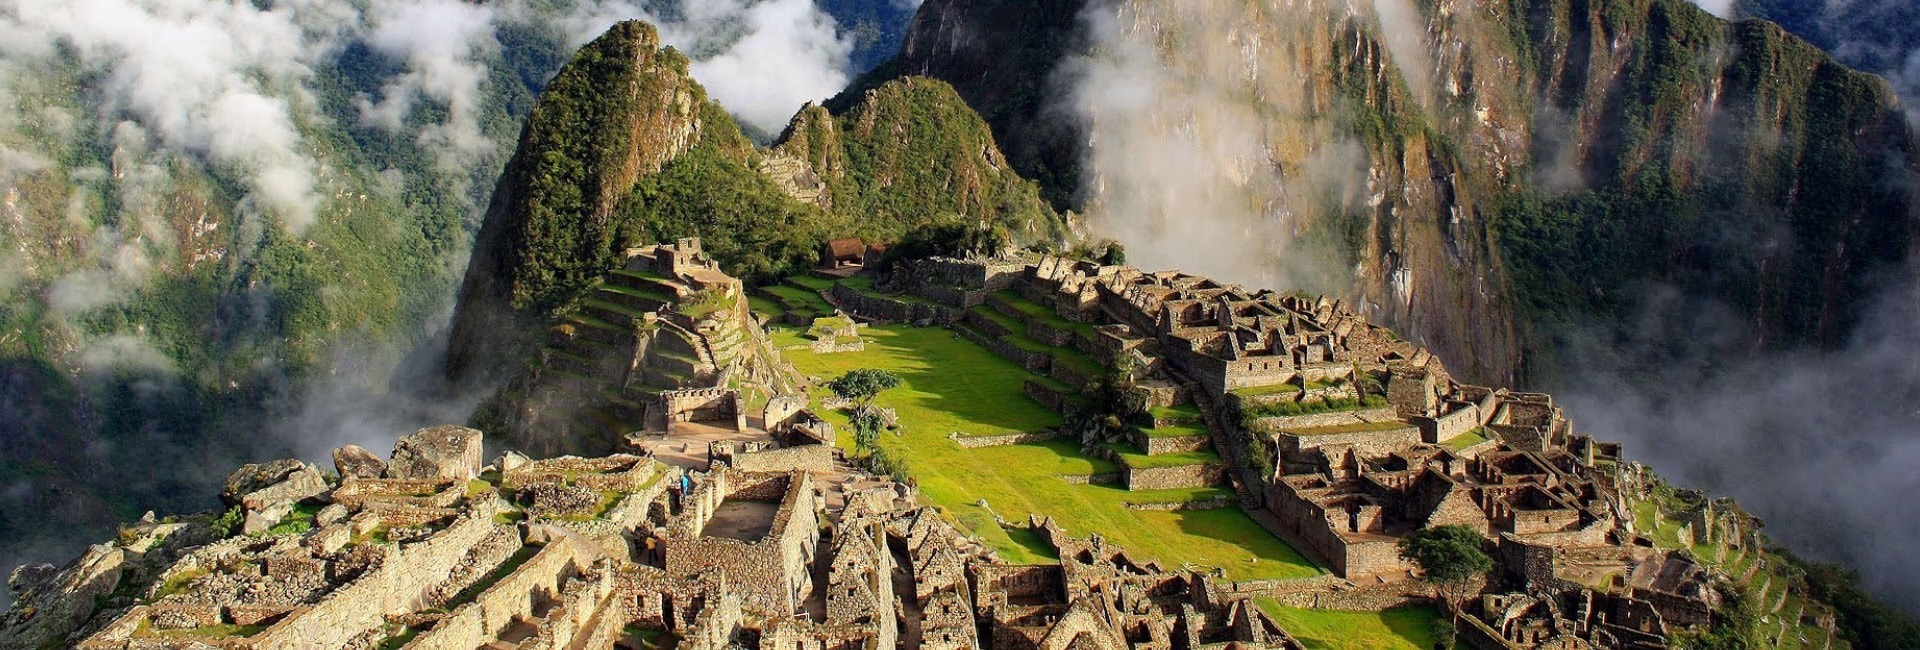 The Myton Hospices - Challenge Events - Machu Picchu Inca